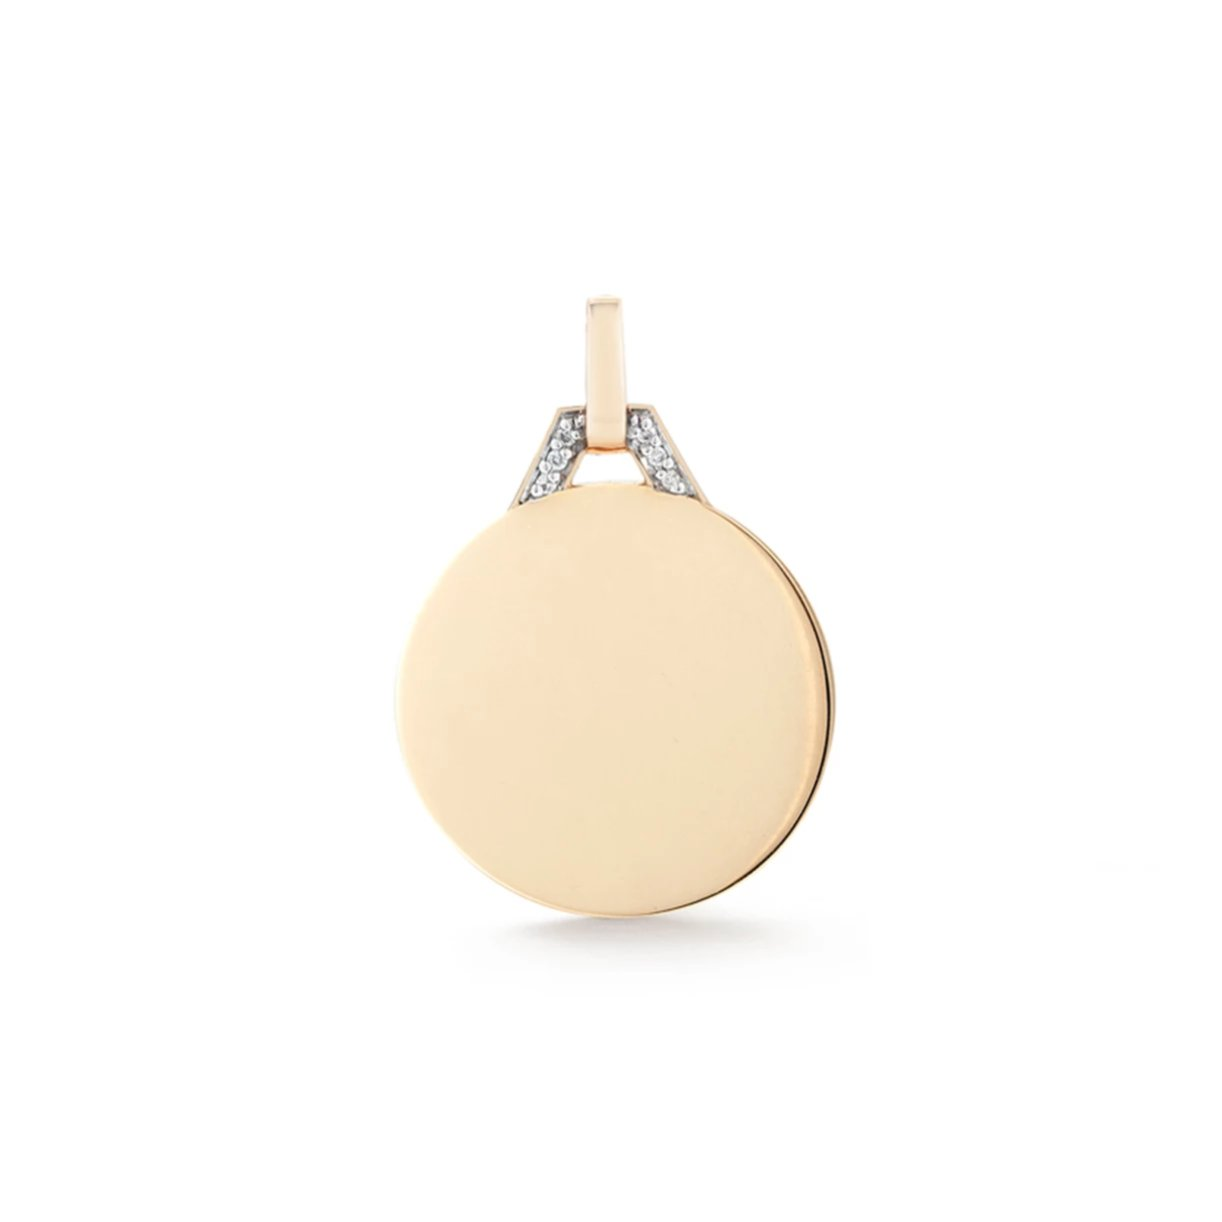 DORA 18K GOLD AND DIAMOND DISC CHARM